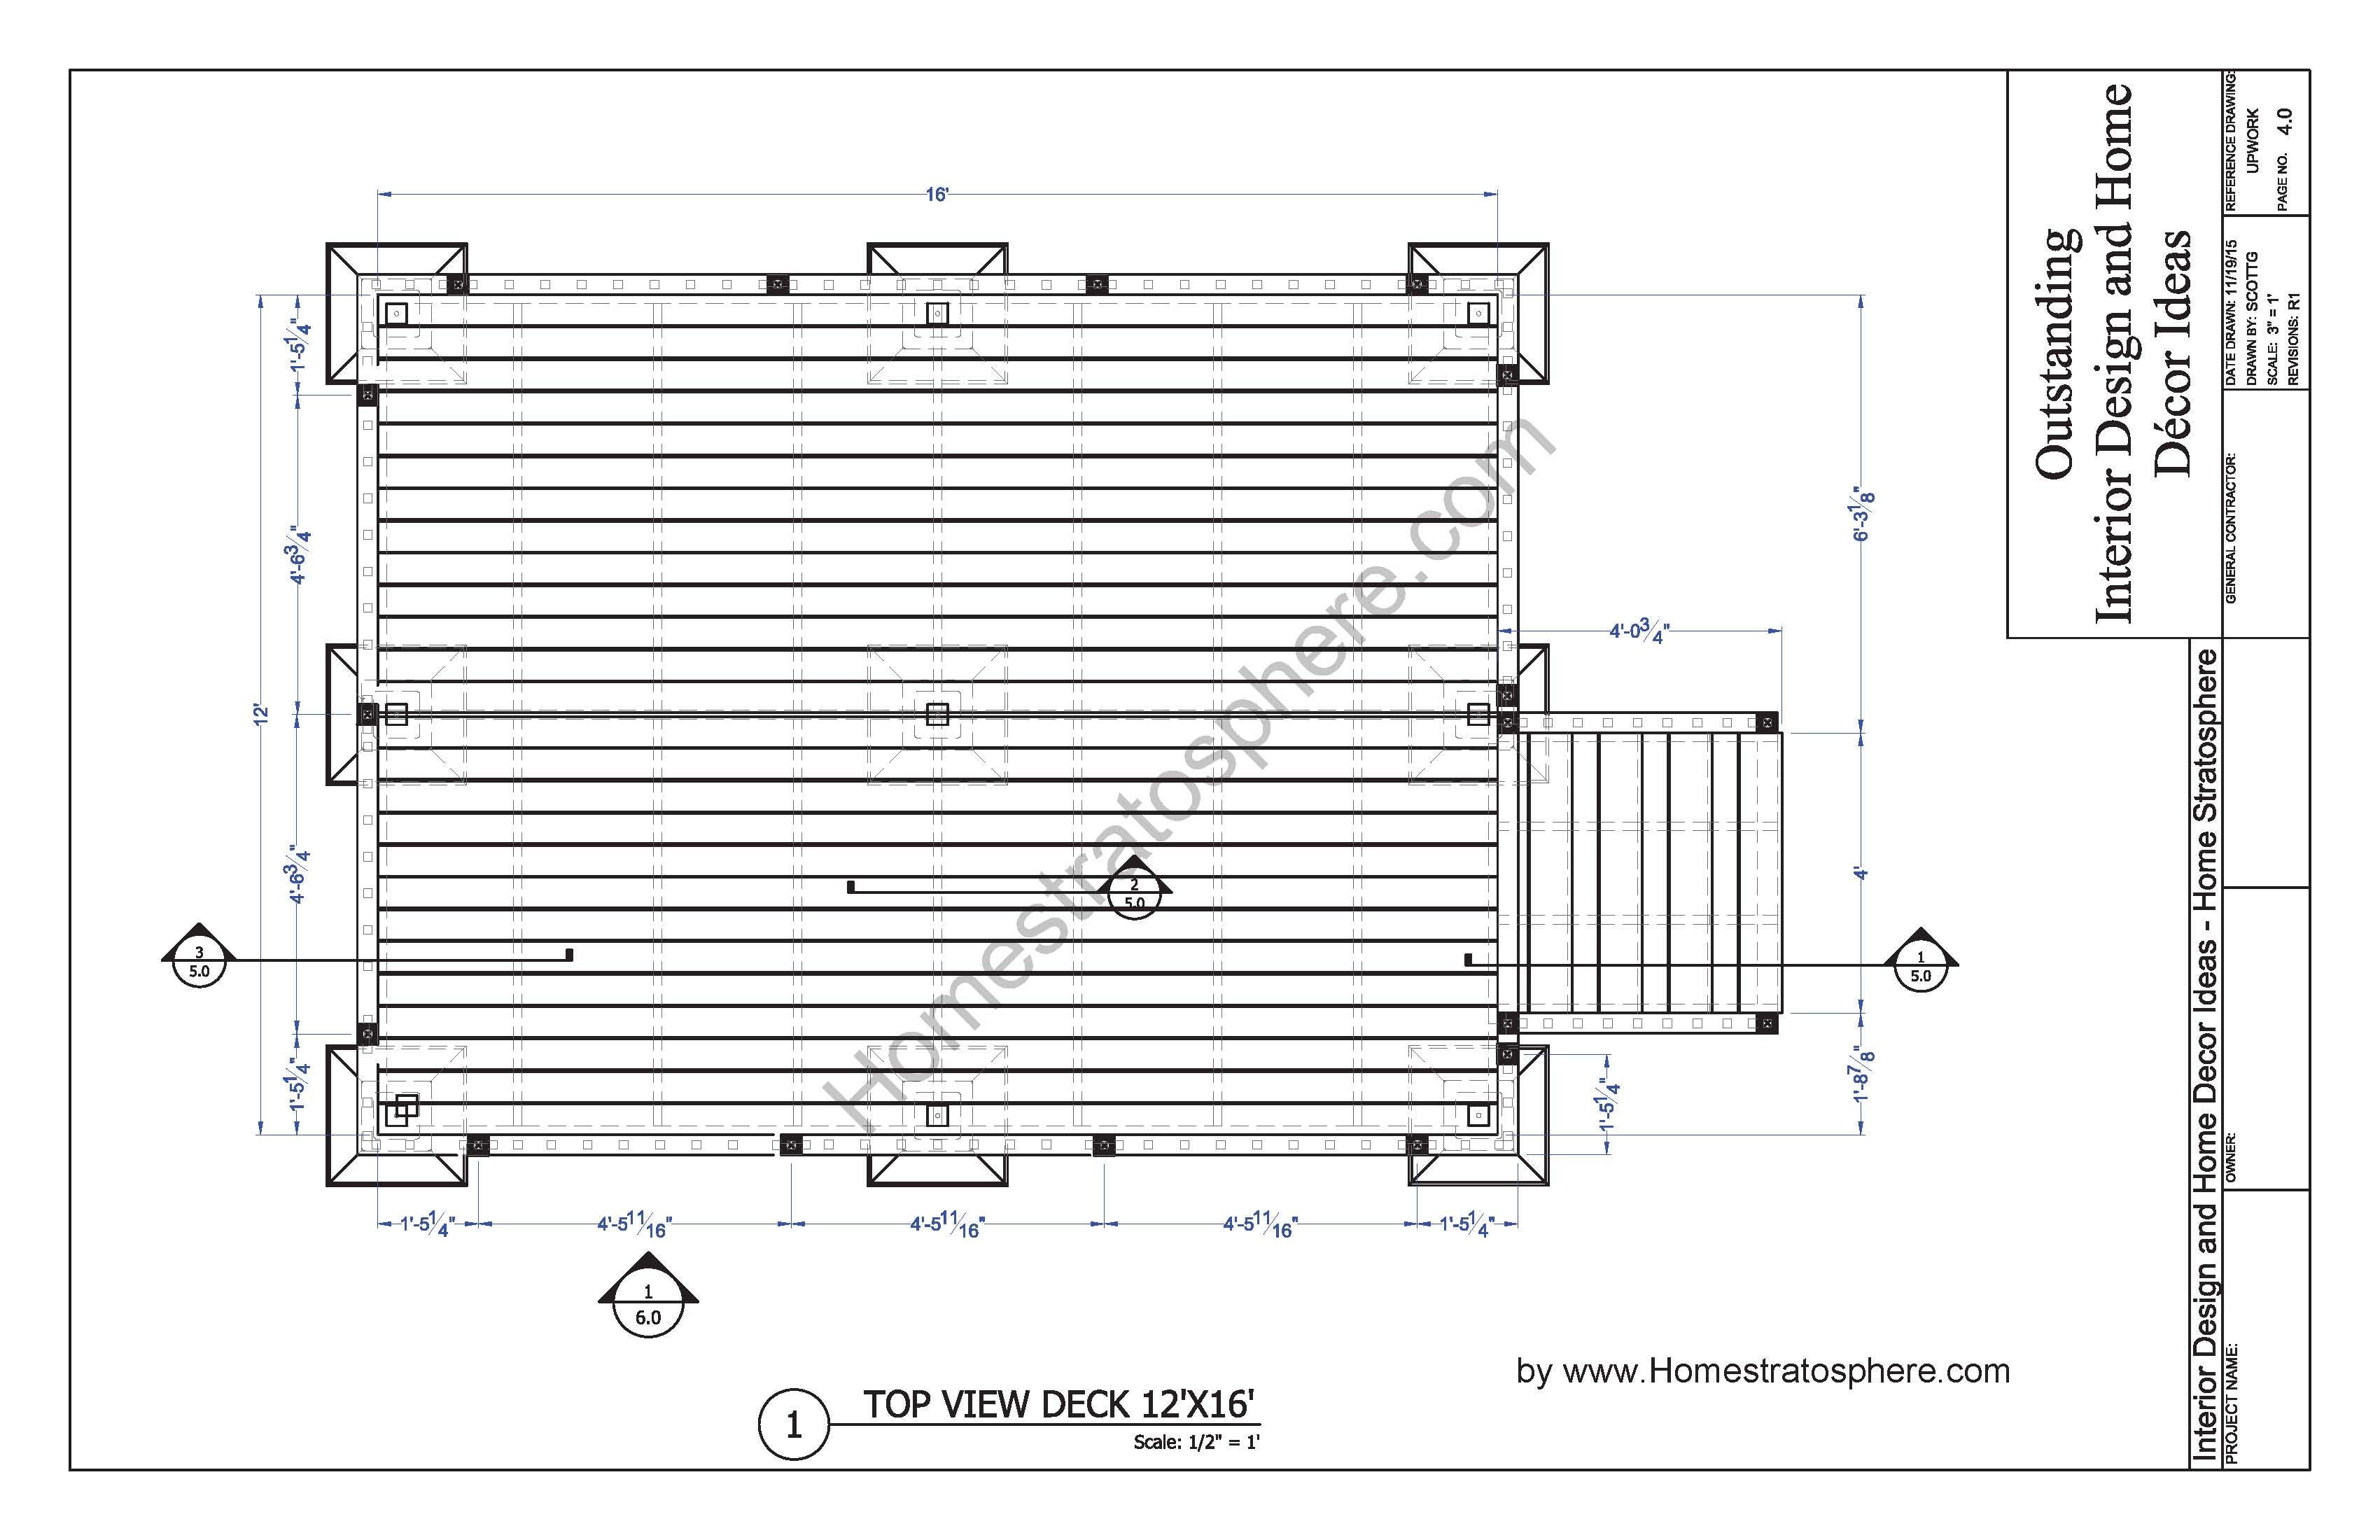 12x16 Deck with Stairs Plan_Page_04